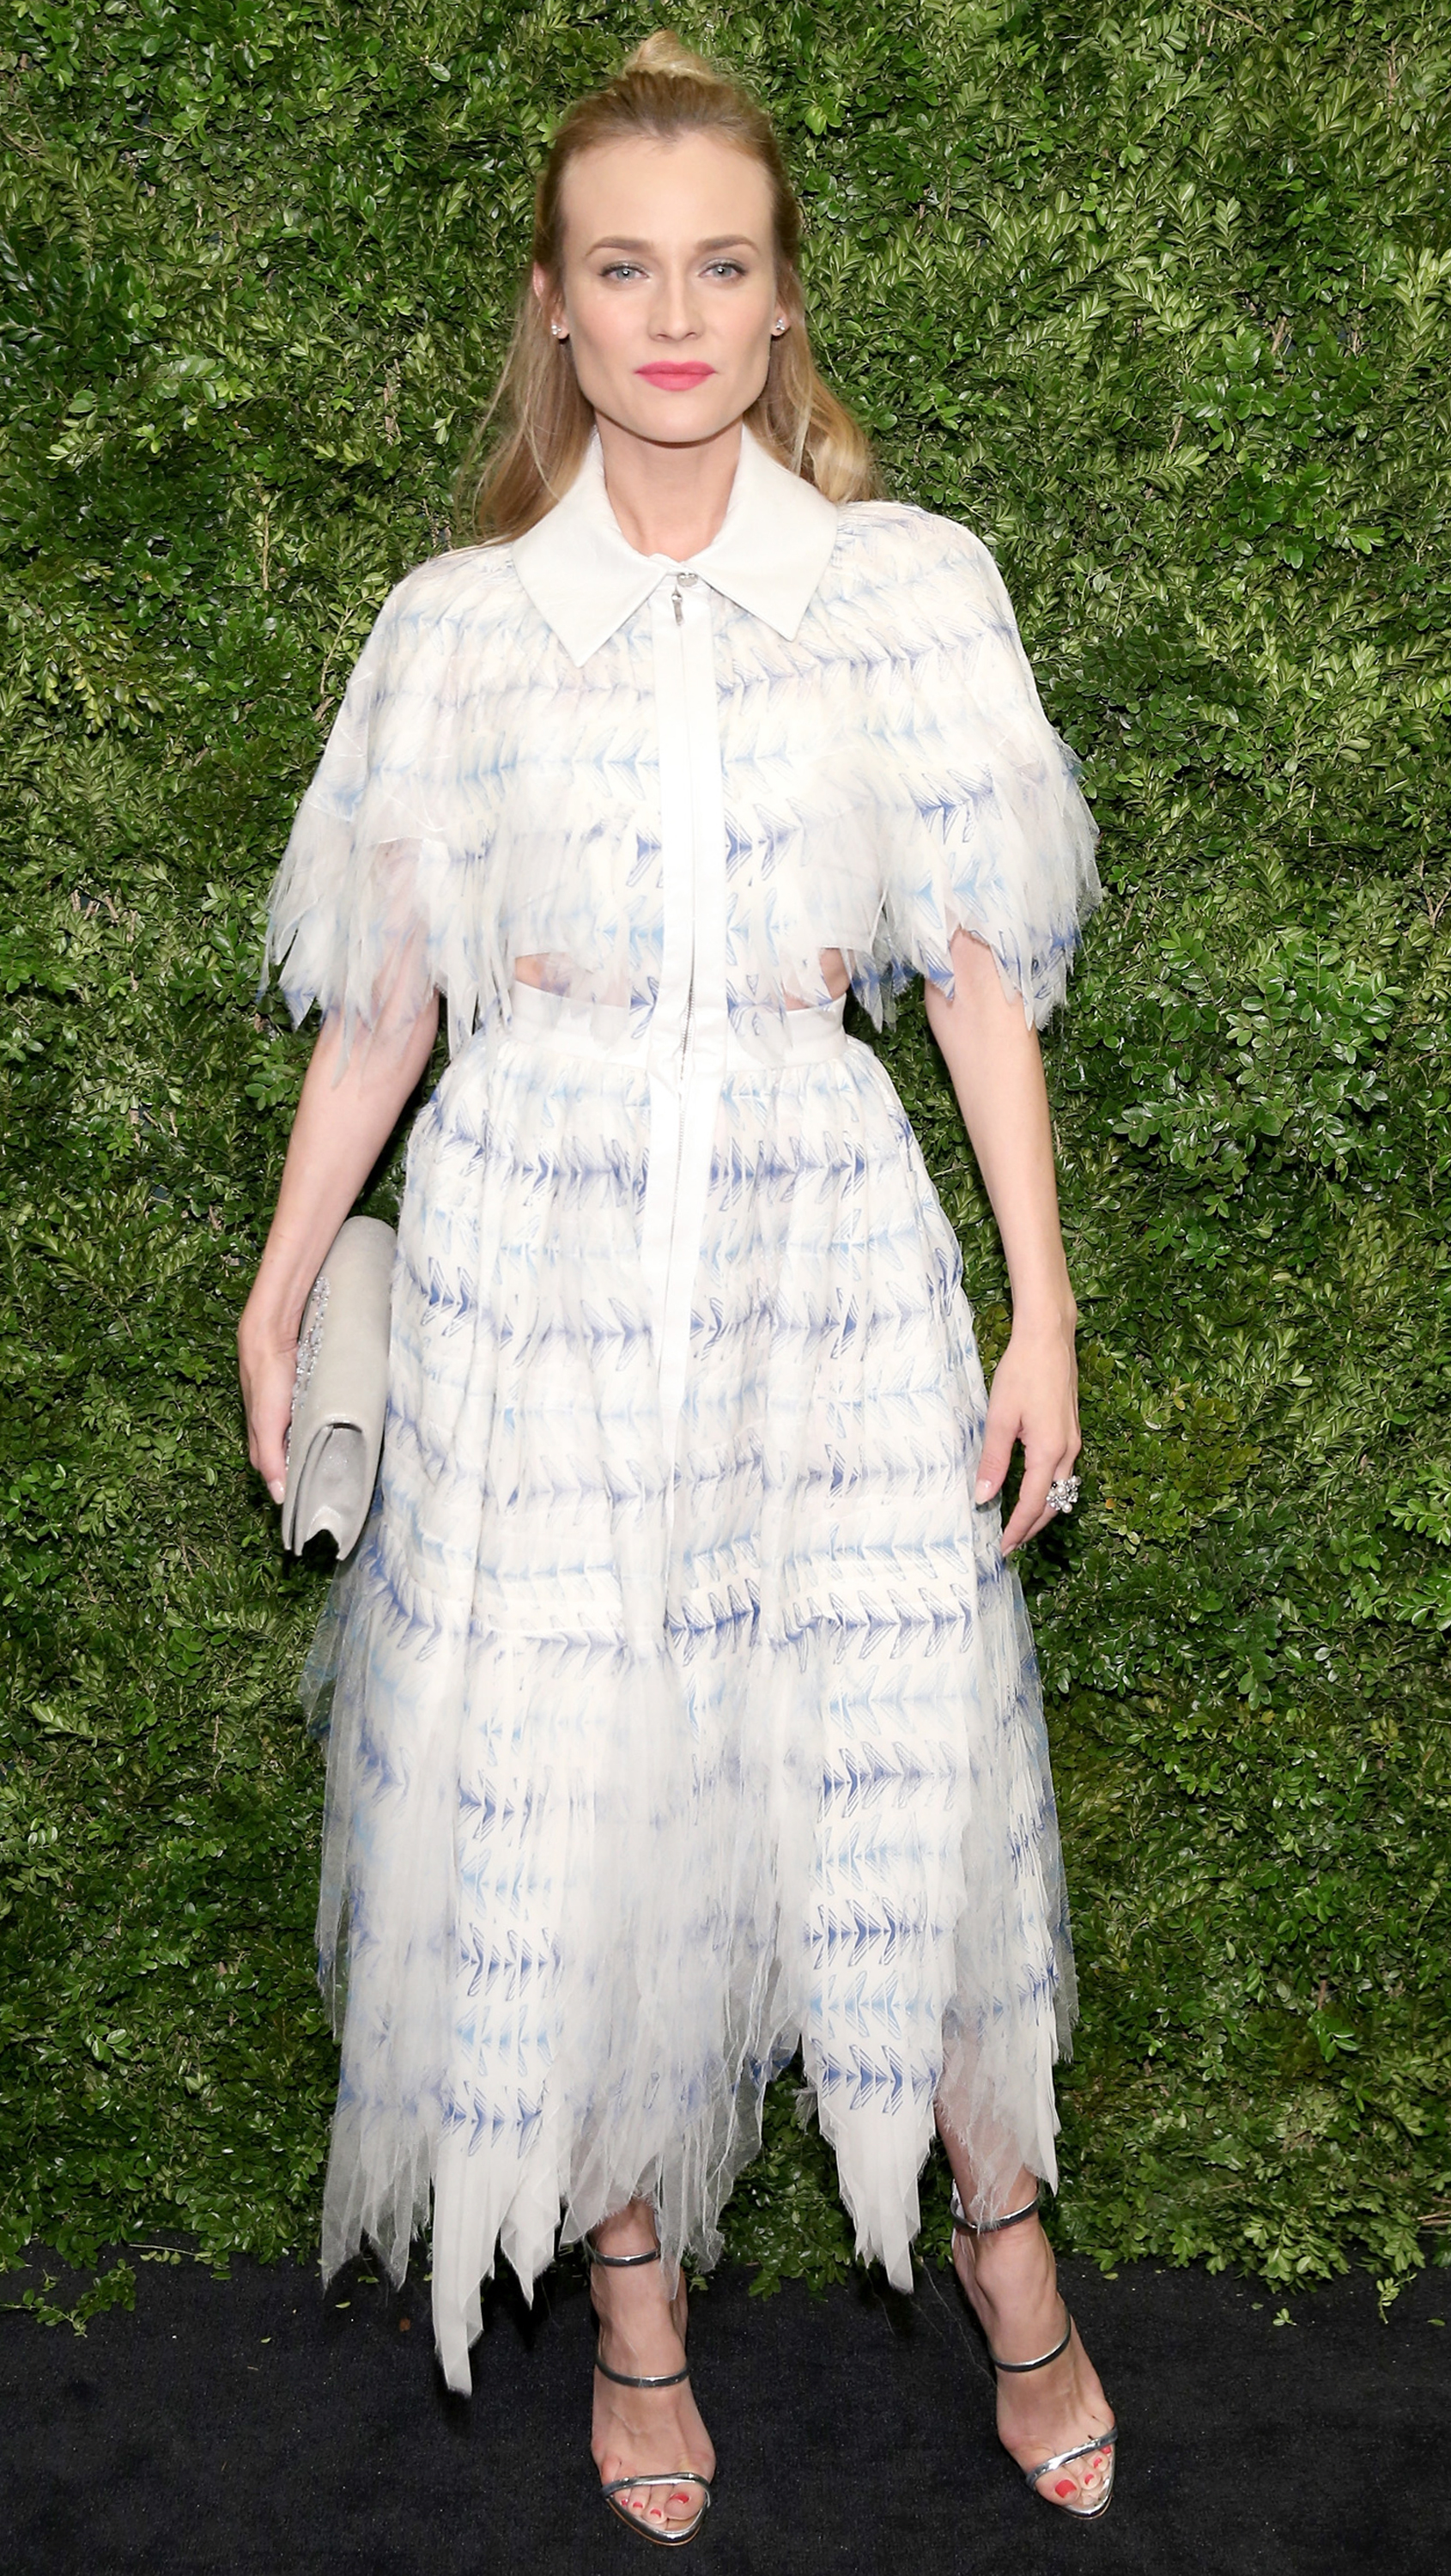 """Last night at the Museum of Modern Art's 8th Annual Film Benefit presented by Chanel, the New York institution honoured Cate Blanchett, who it described as """"A woman who embodies the greatest traditions of screen acting while fiercely embracing innovation and risk."""" A mostly Chanel-clad crowd turned out to celebrate one of our most acclaimed (and chic) exports, including fellow Aussie Rose Byrne, <em>Carol </em>co-star Rooney Mara, and the ever-stylish Diane Kruger. Click through to see their looks."""